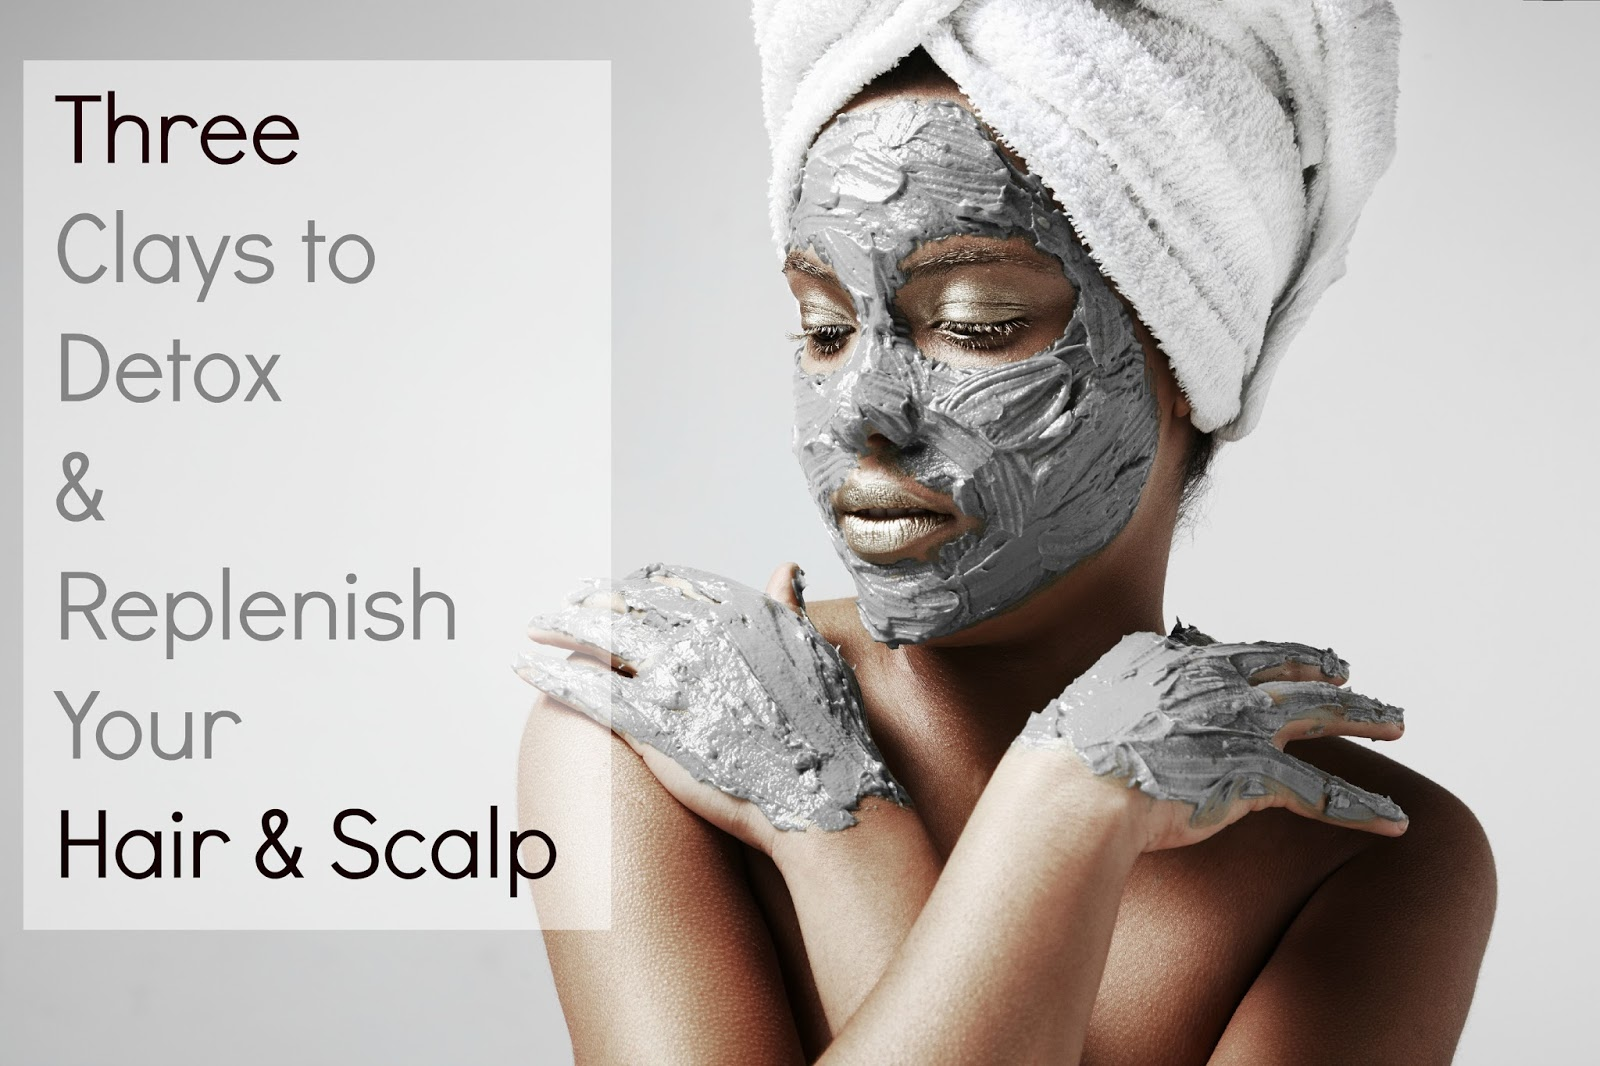 3 Clays to Detox & Replenish Your Hair & Scalp